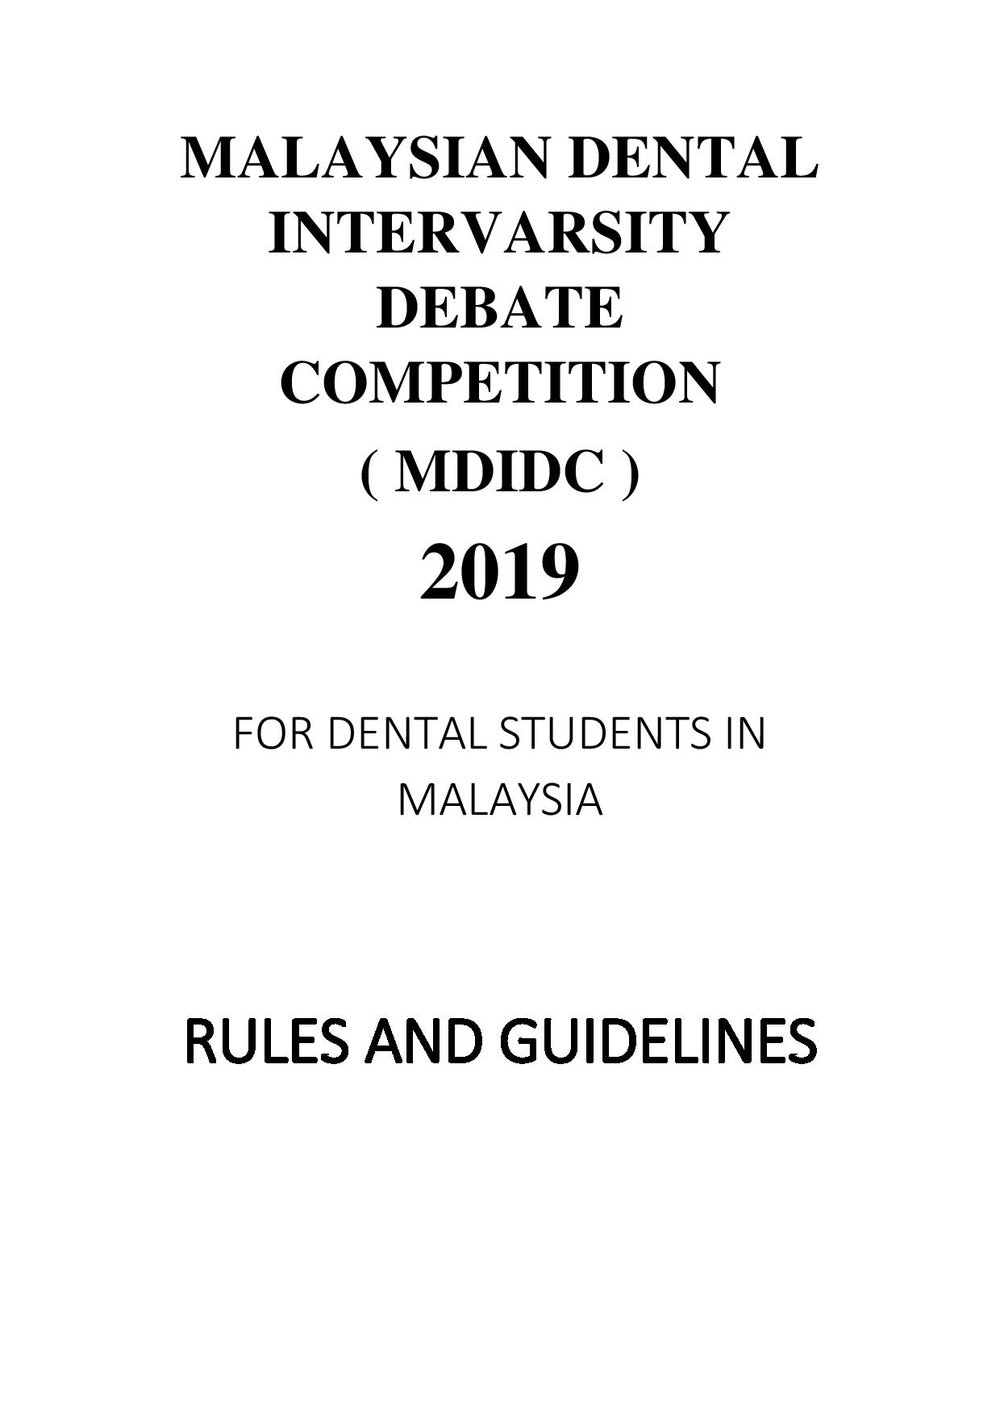 MALAYSIAN DENTAL INTERVARSITY DEBATE COMPETITION (Edited)-page-001.jpg